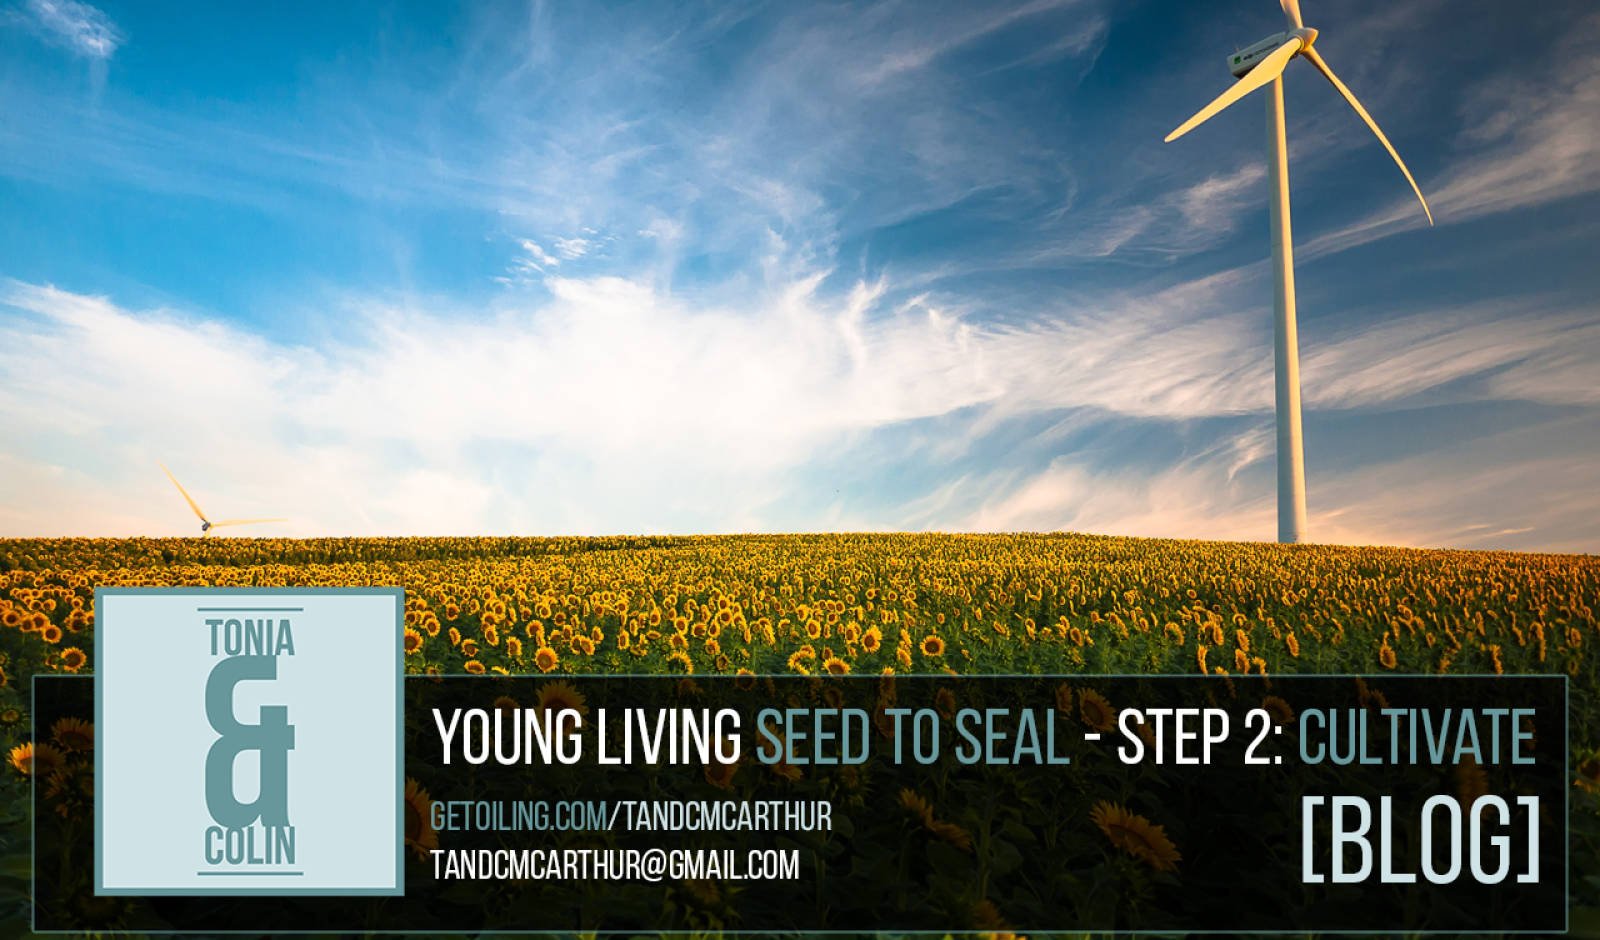 Young Living Essential Oils Seed to Seal Process - Step 2: Cultivate